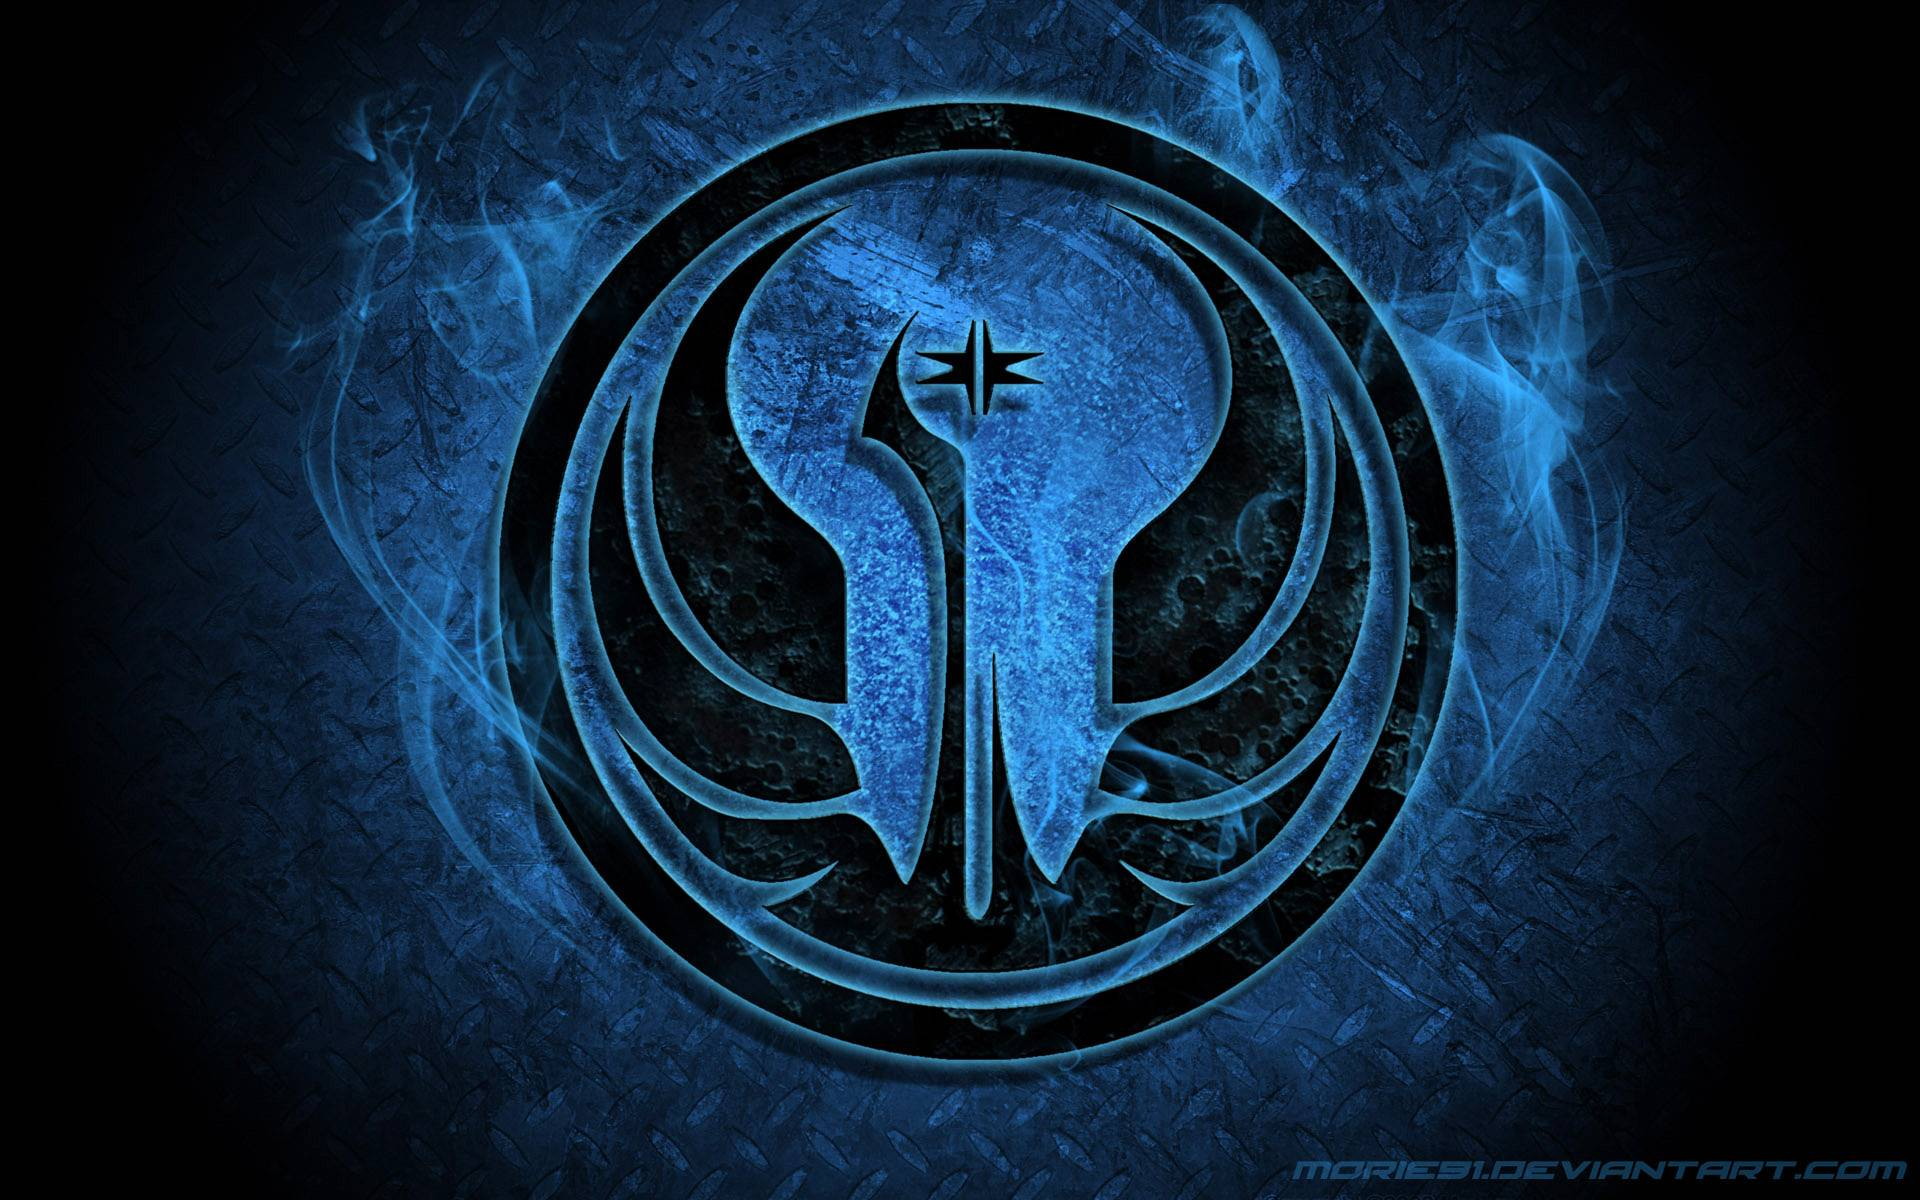 The Old Republic Logo The Symbol for Peace and prosperity trhoughout 1920x1200